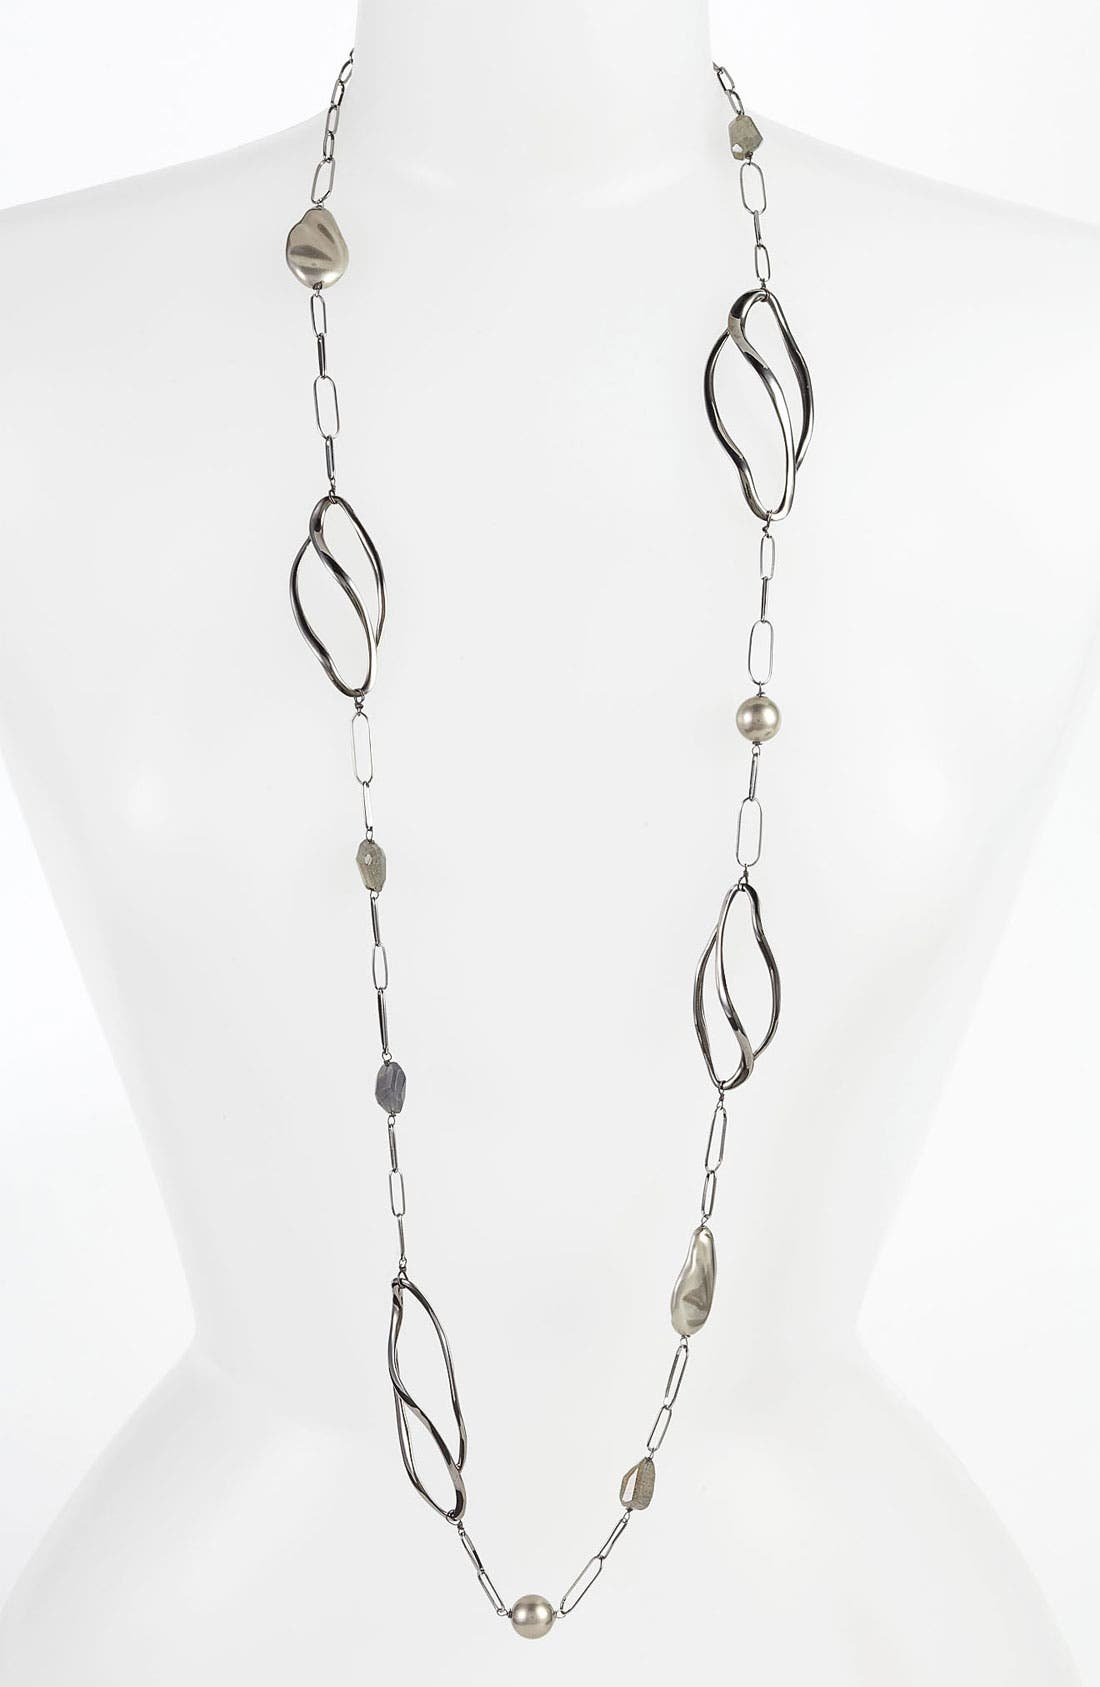 Alternate Image 1 Selected - Alexis Bittar 'Miss Havisham - Liquid' Linked Station Necklace (Nordstrom Exclusive)